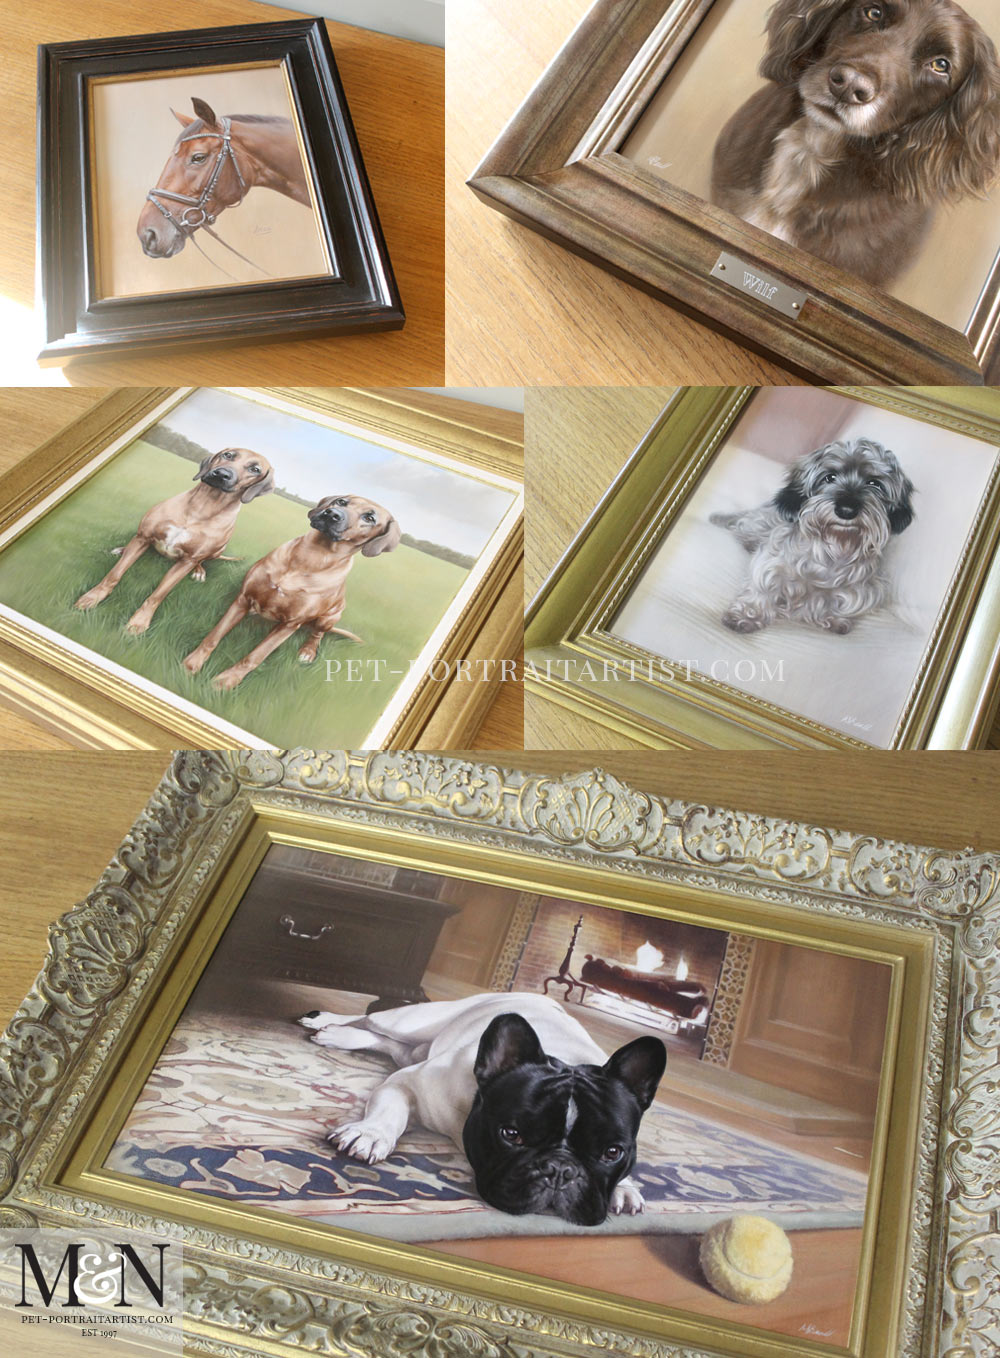 Introducing Our Pet Portraits oil pet portraits Nicholas Beall